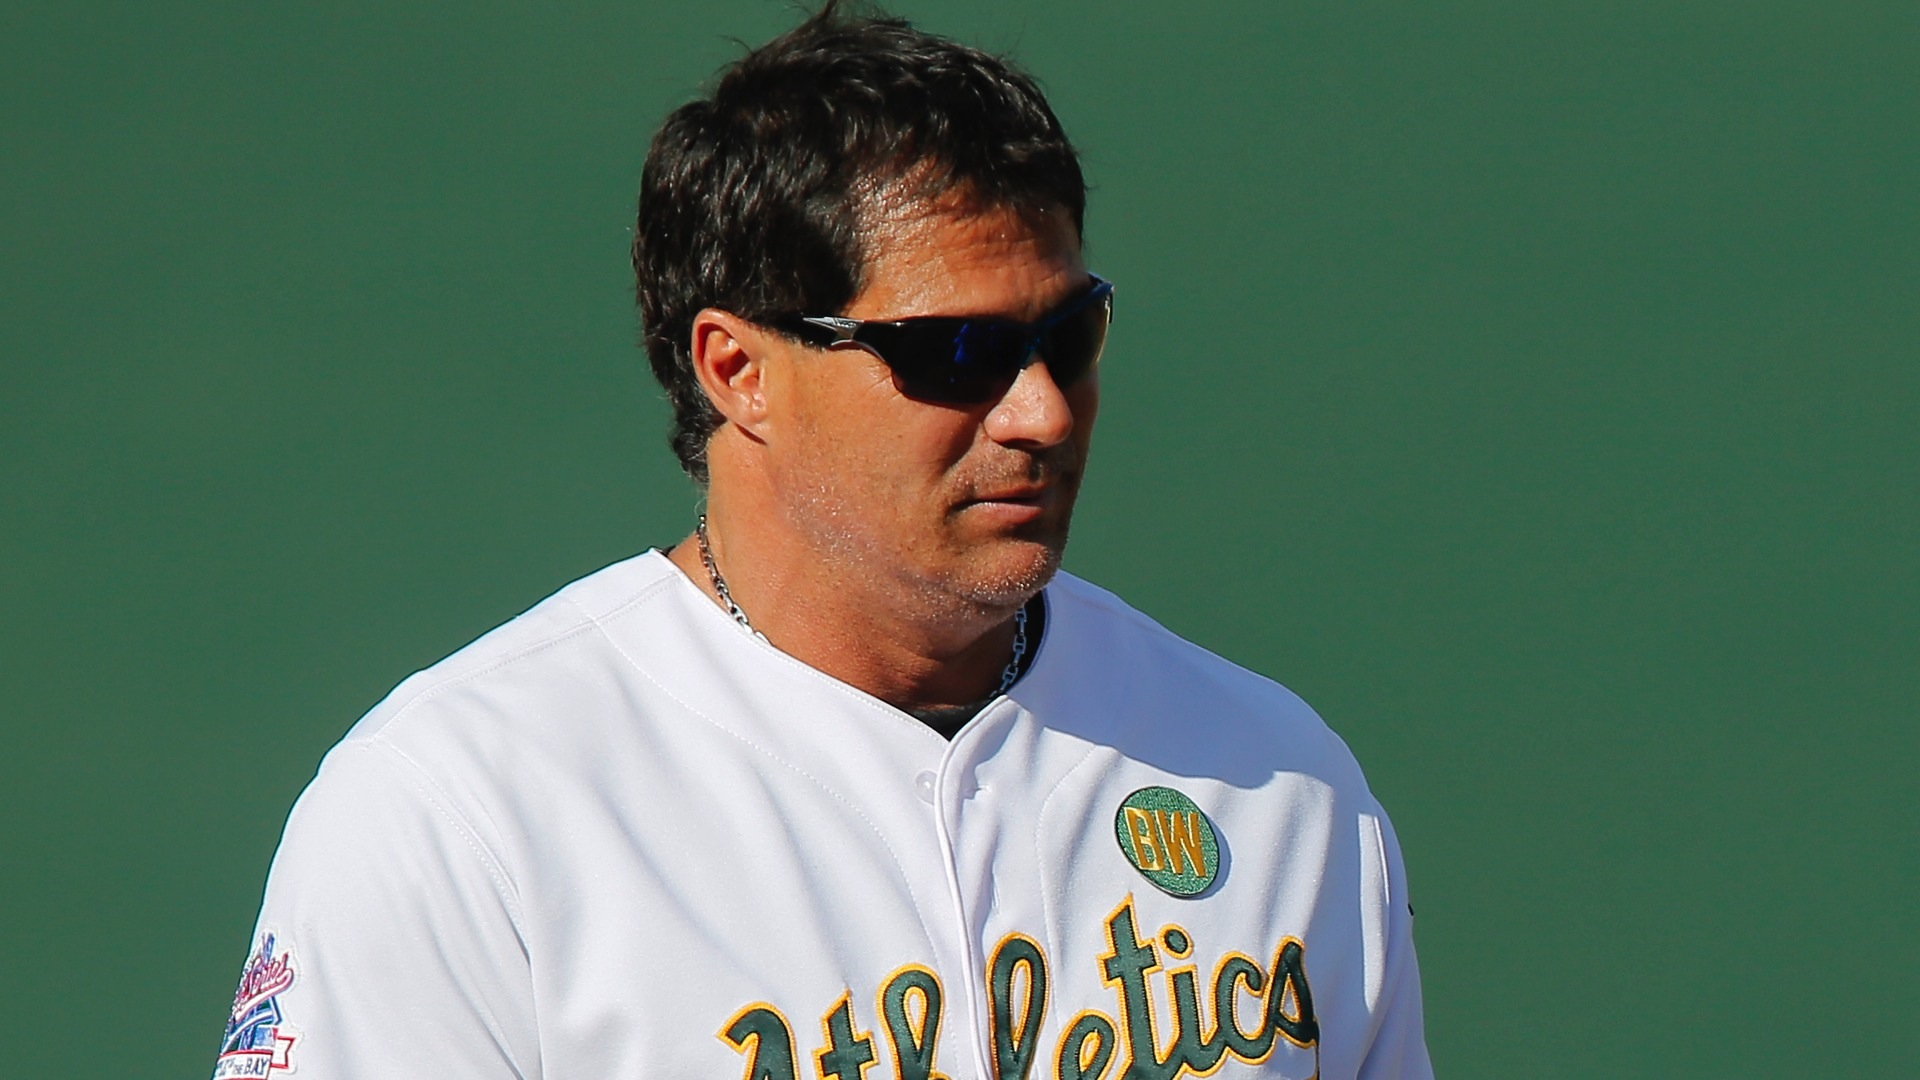 jose-canseco-111714-FTR-GETTY.jpeg